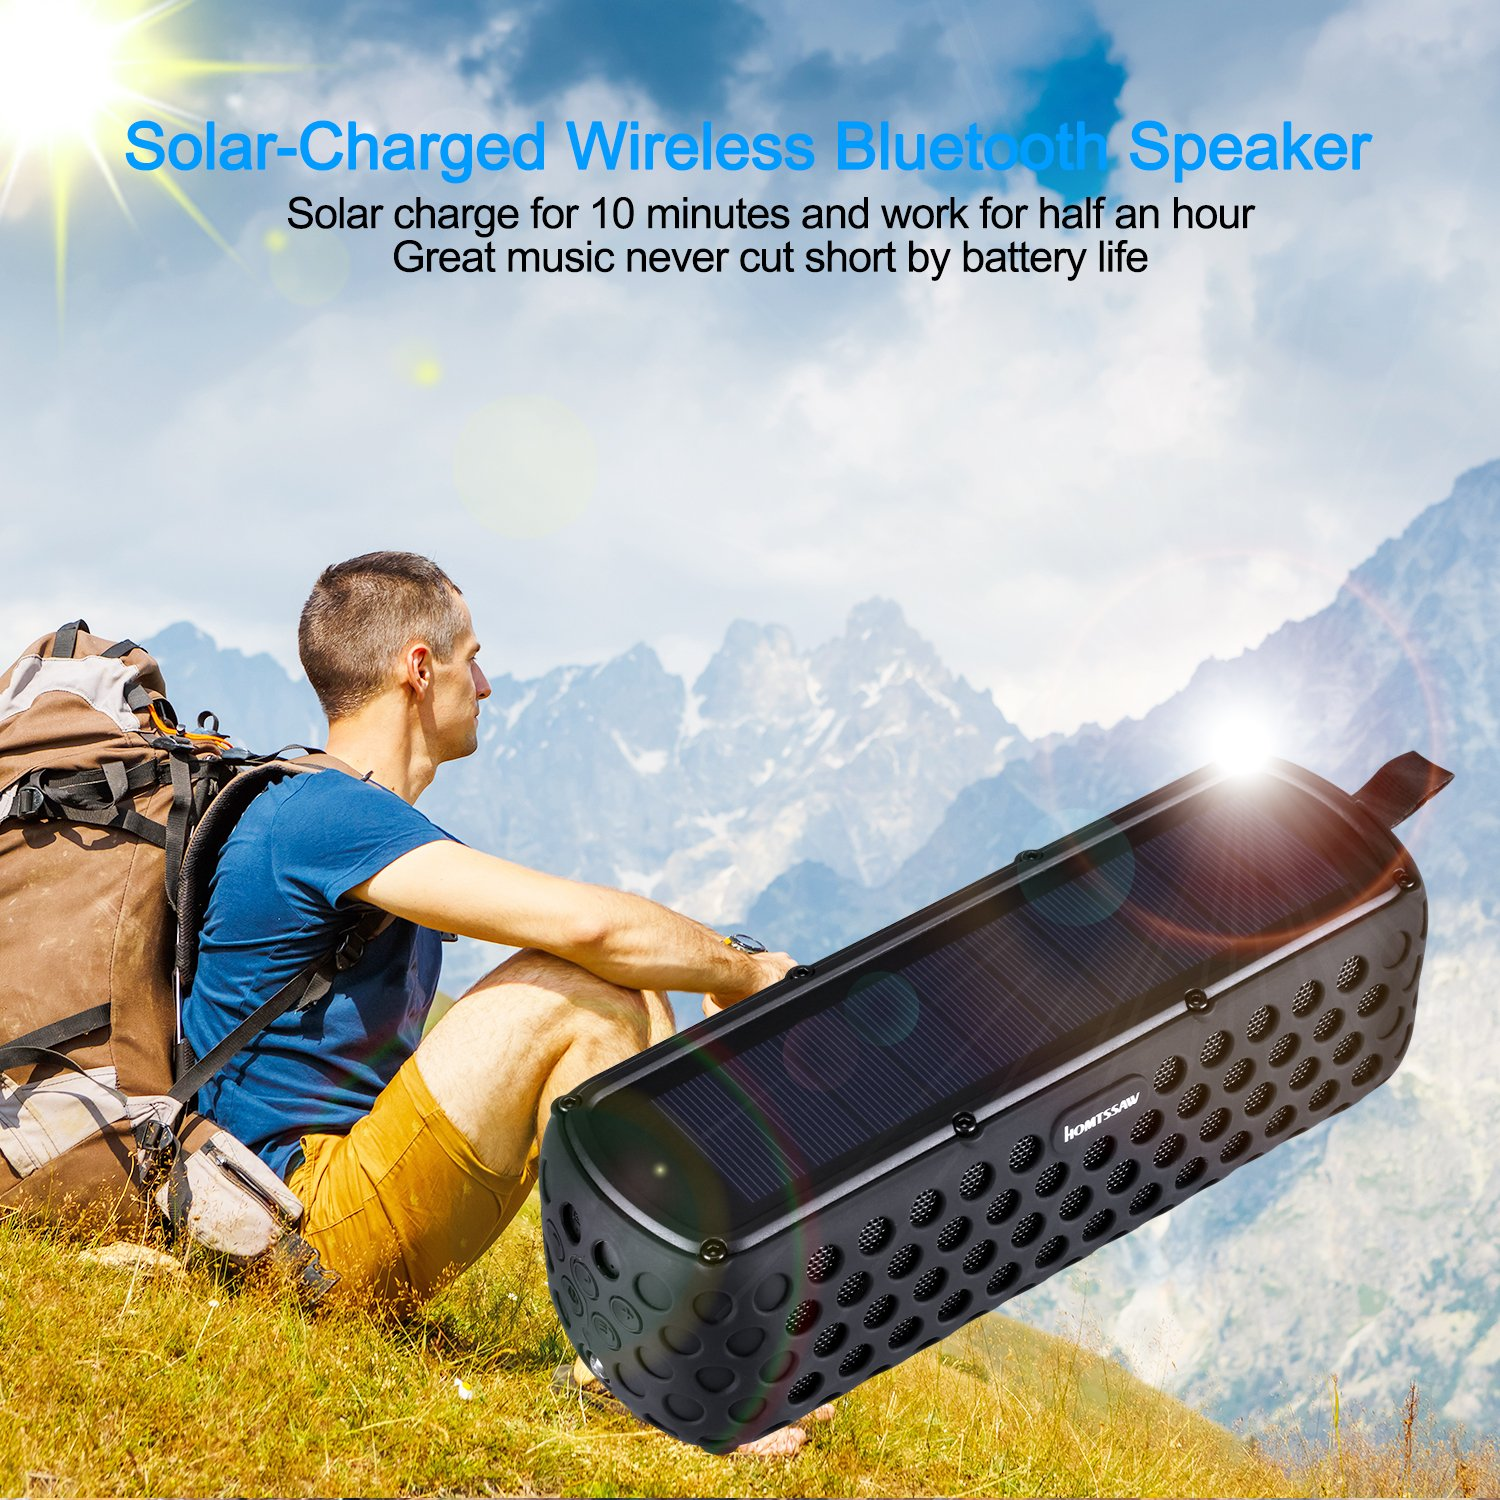 Bluetooth Speakers 30-Hour Playing time Portable Speaker with Splash proof Solar-Charged Wireless Stereo Bluetooth 4.0 Loudspeaker Splash Shock for all outdoor sports (Black)